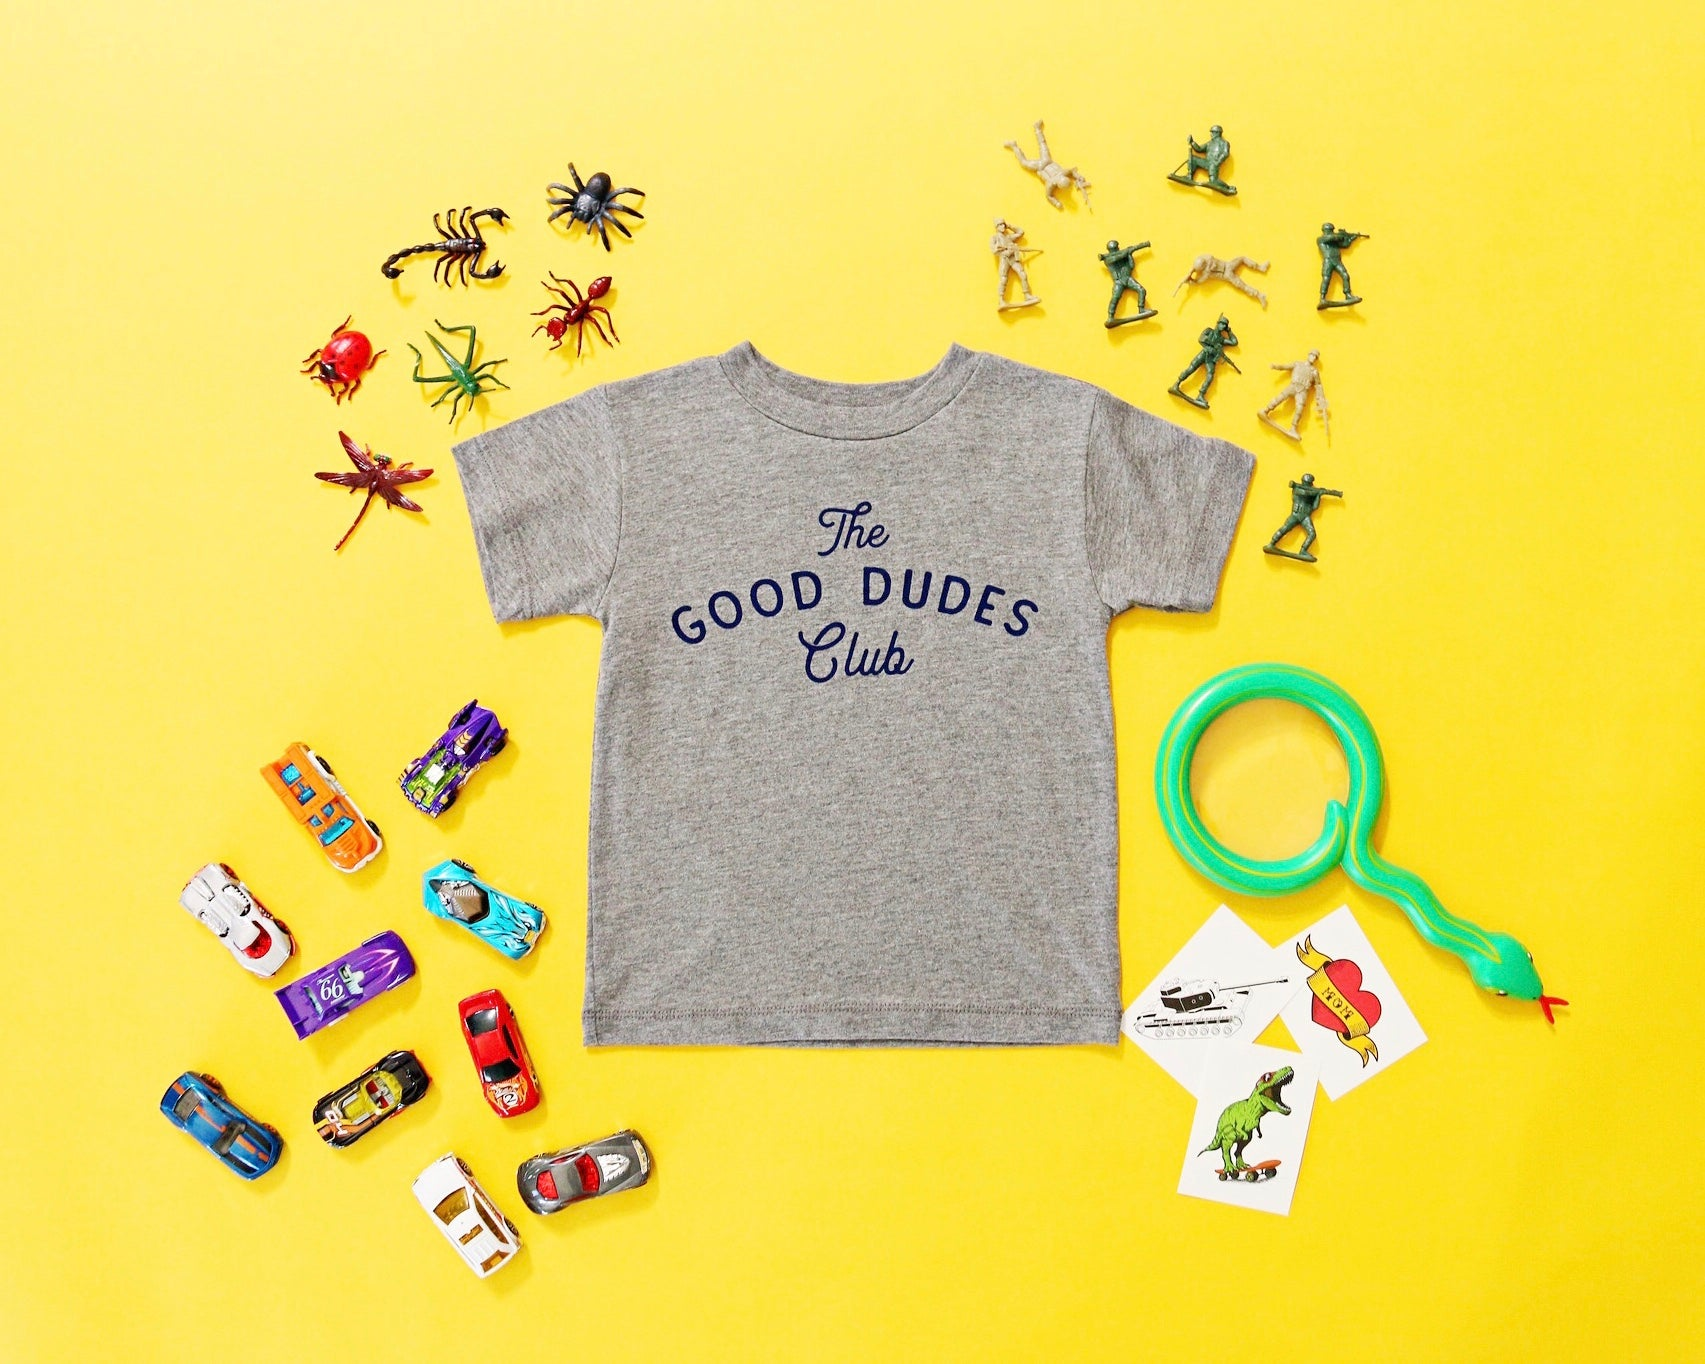 The Good Dudes Club Tee